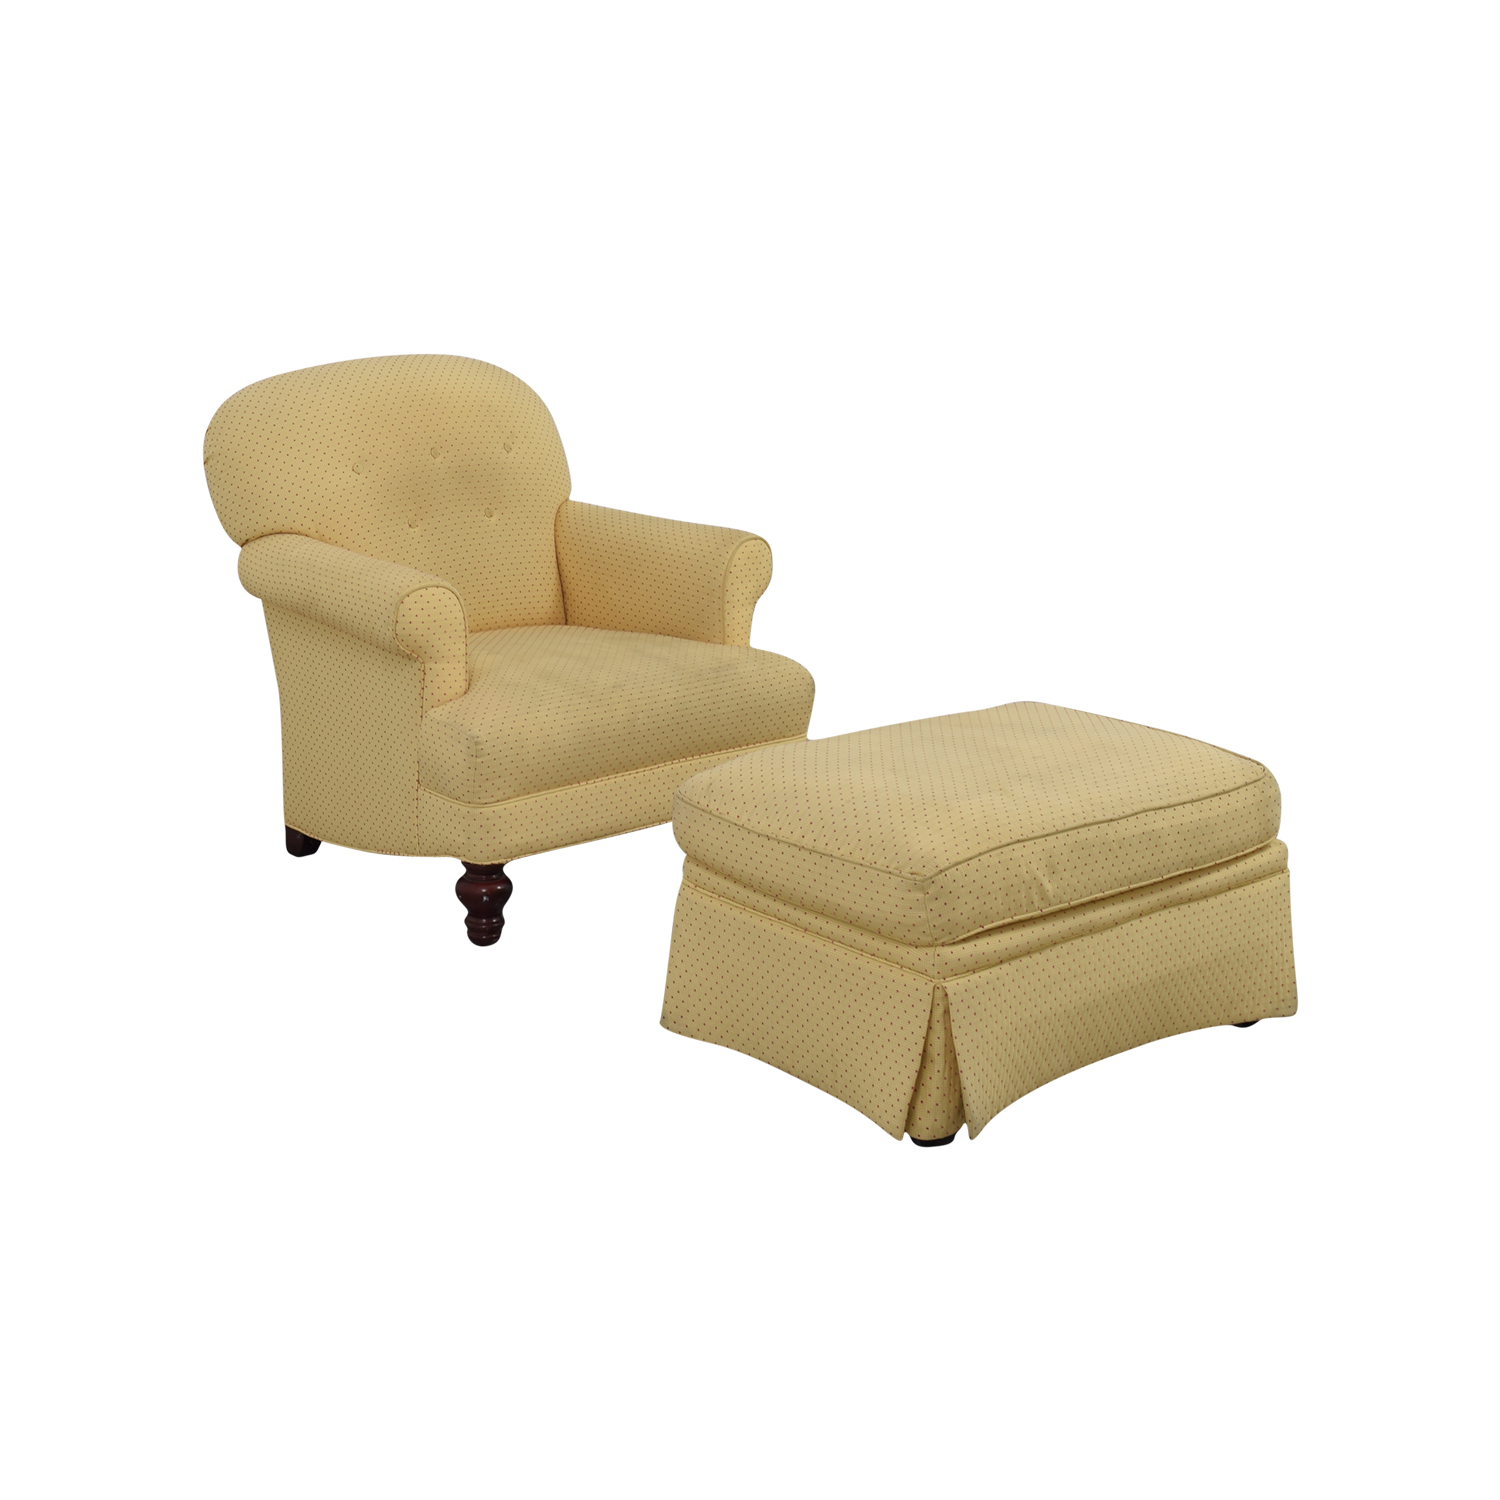 Yellow Arm Chair with Ottoman / Ottomans